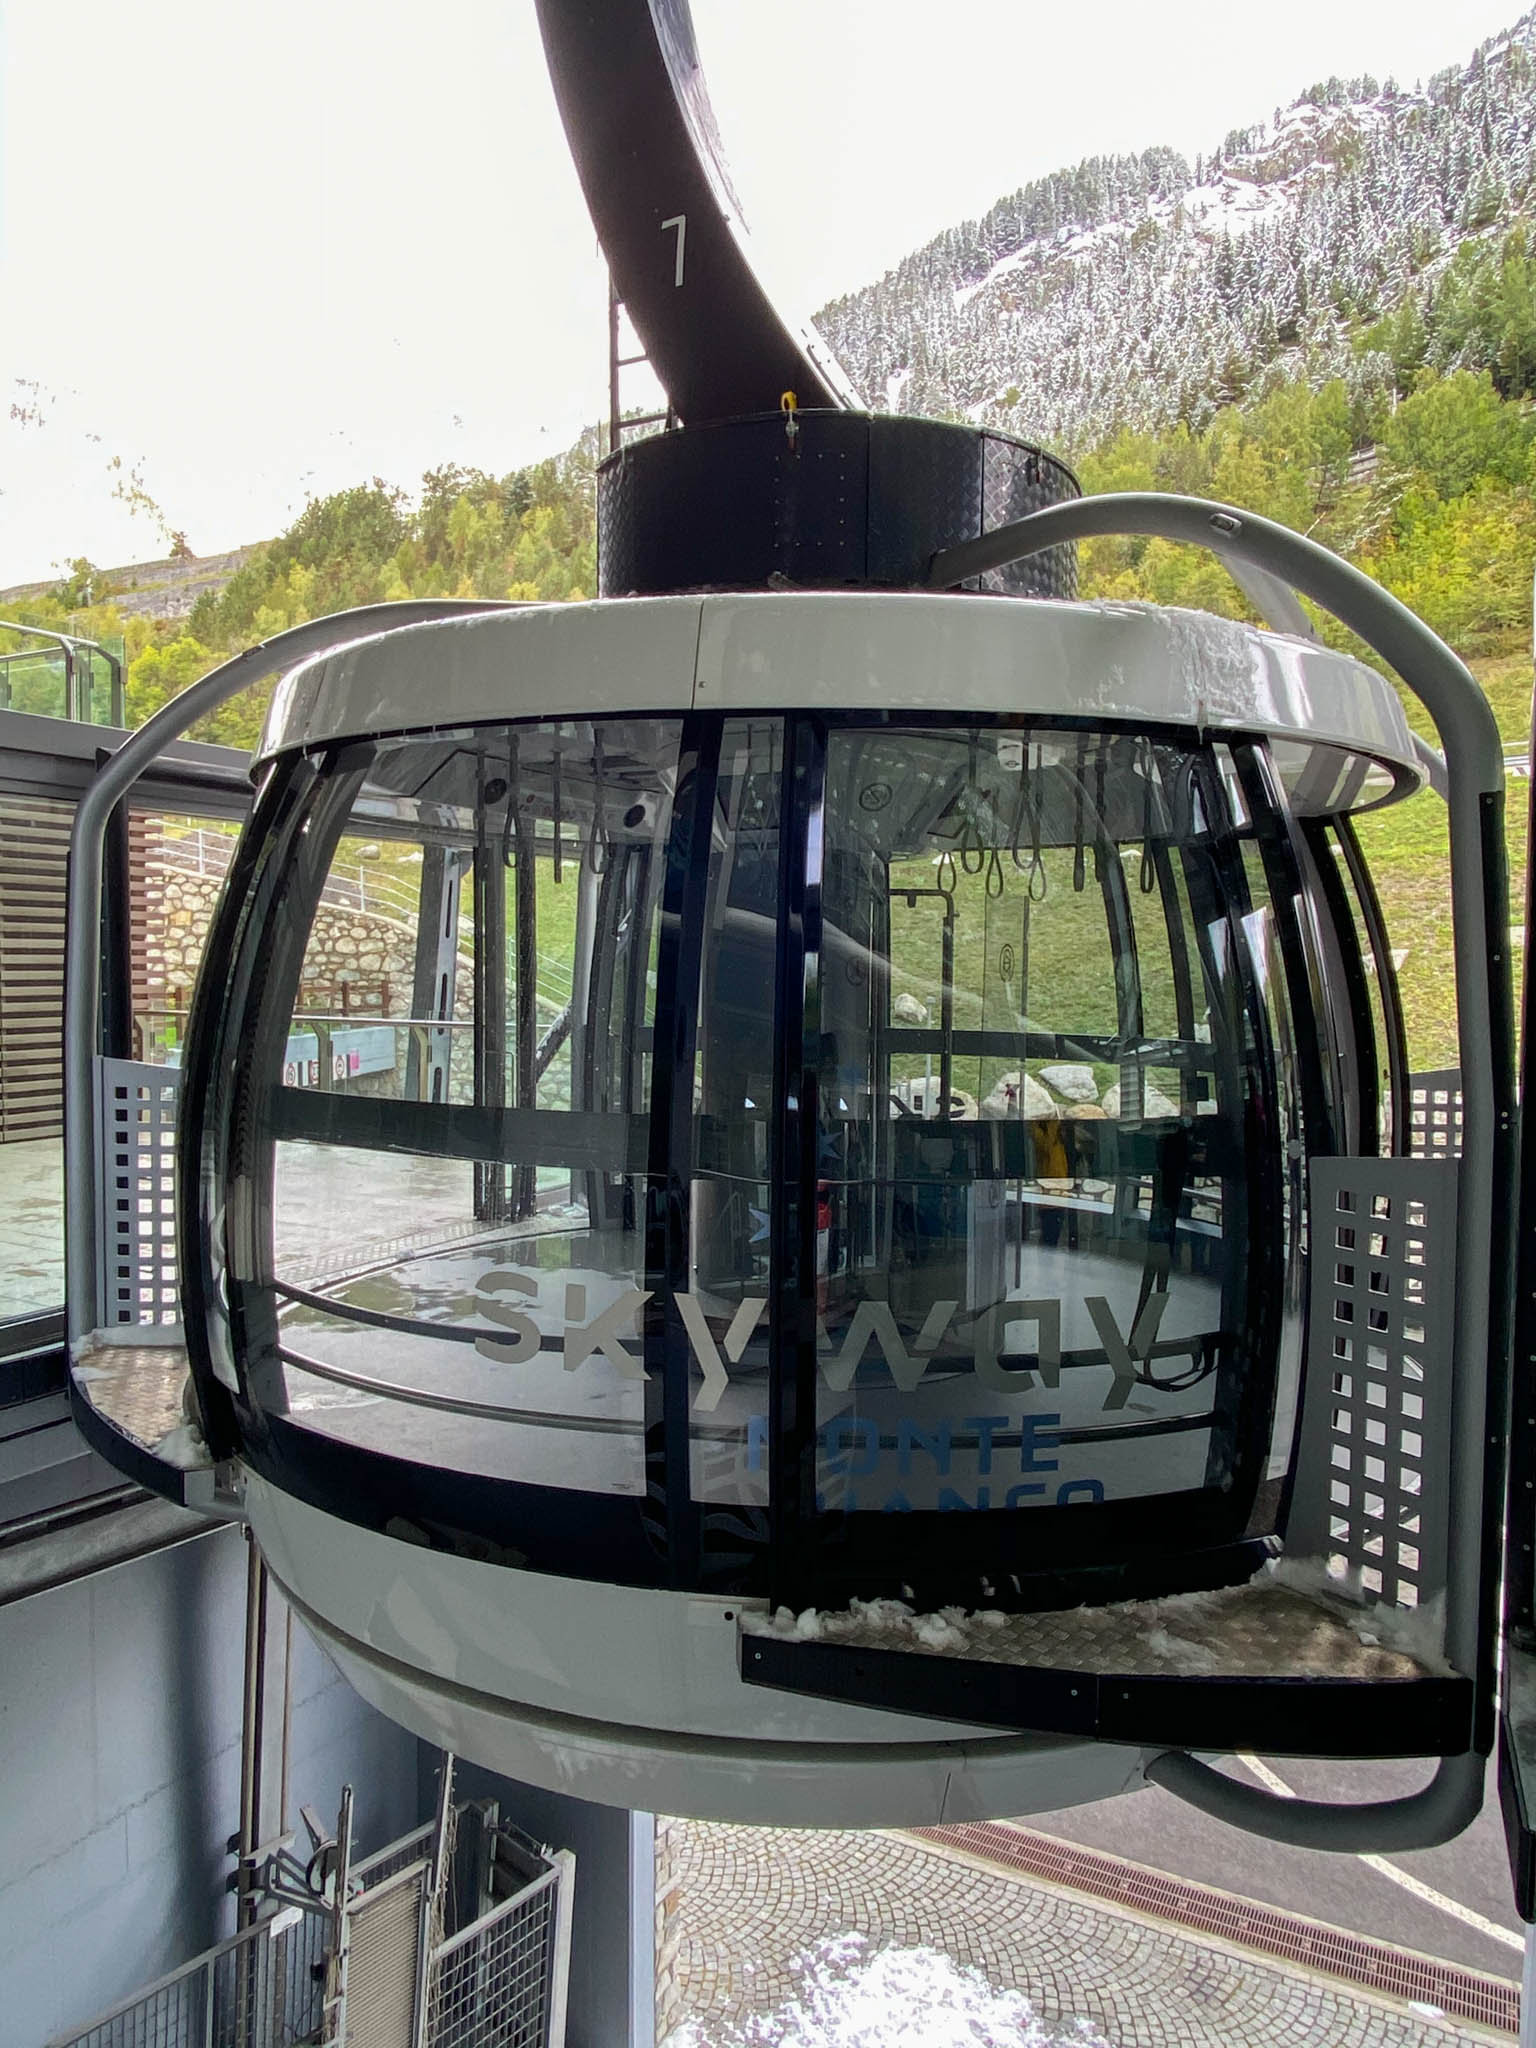 De Skyway in Courmayeur in Aosta